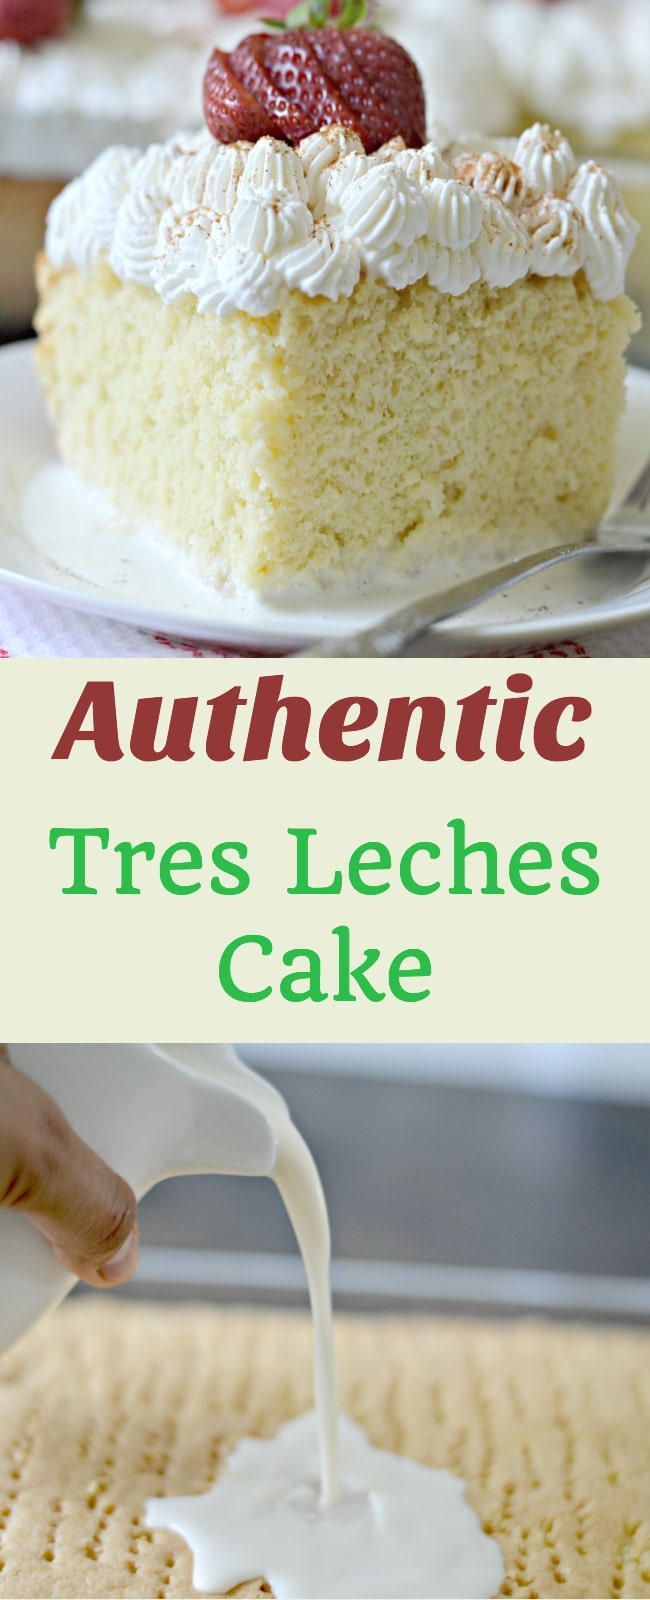 Tres Leches cake is an authentic Mexican dessert that is full of delicious flavor and perfect for any party or other gatherings.